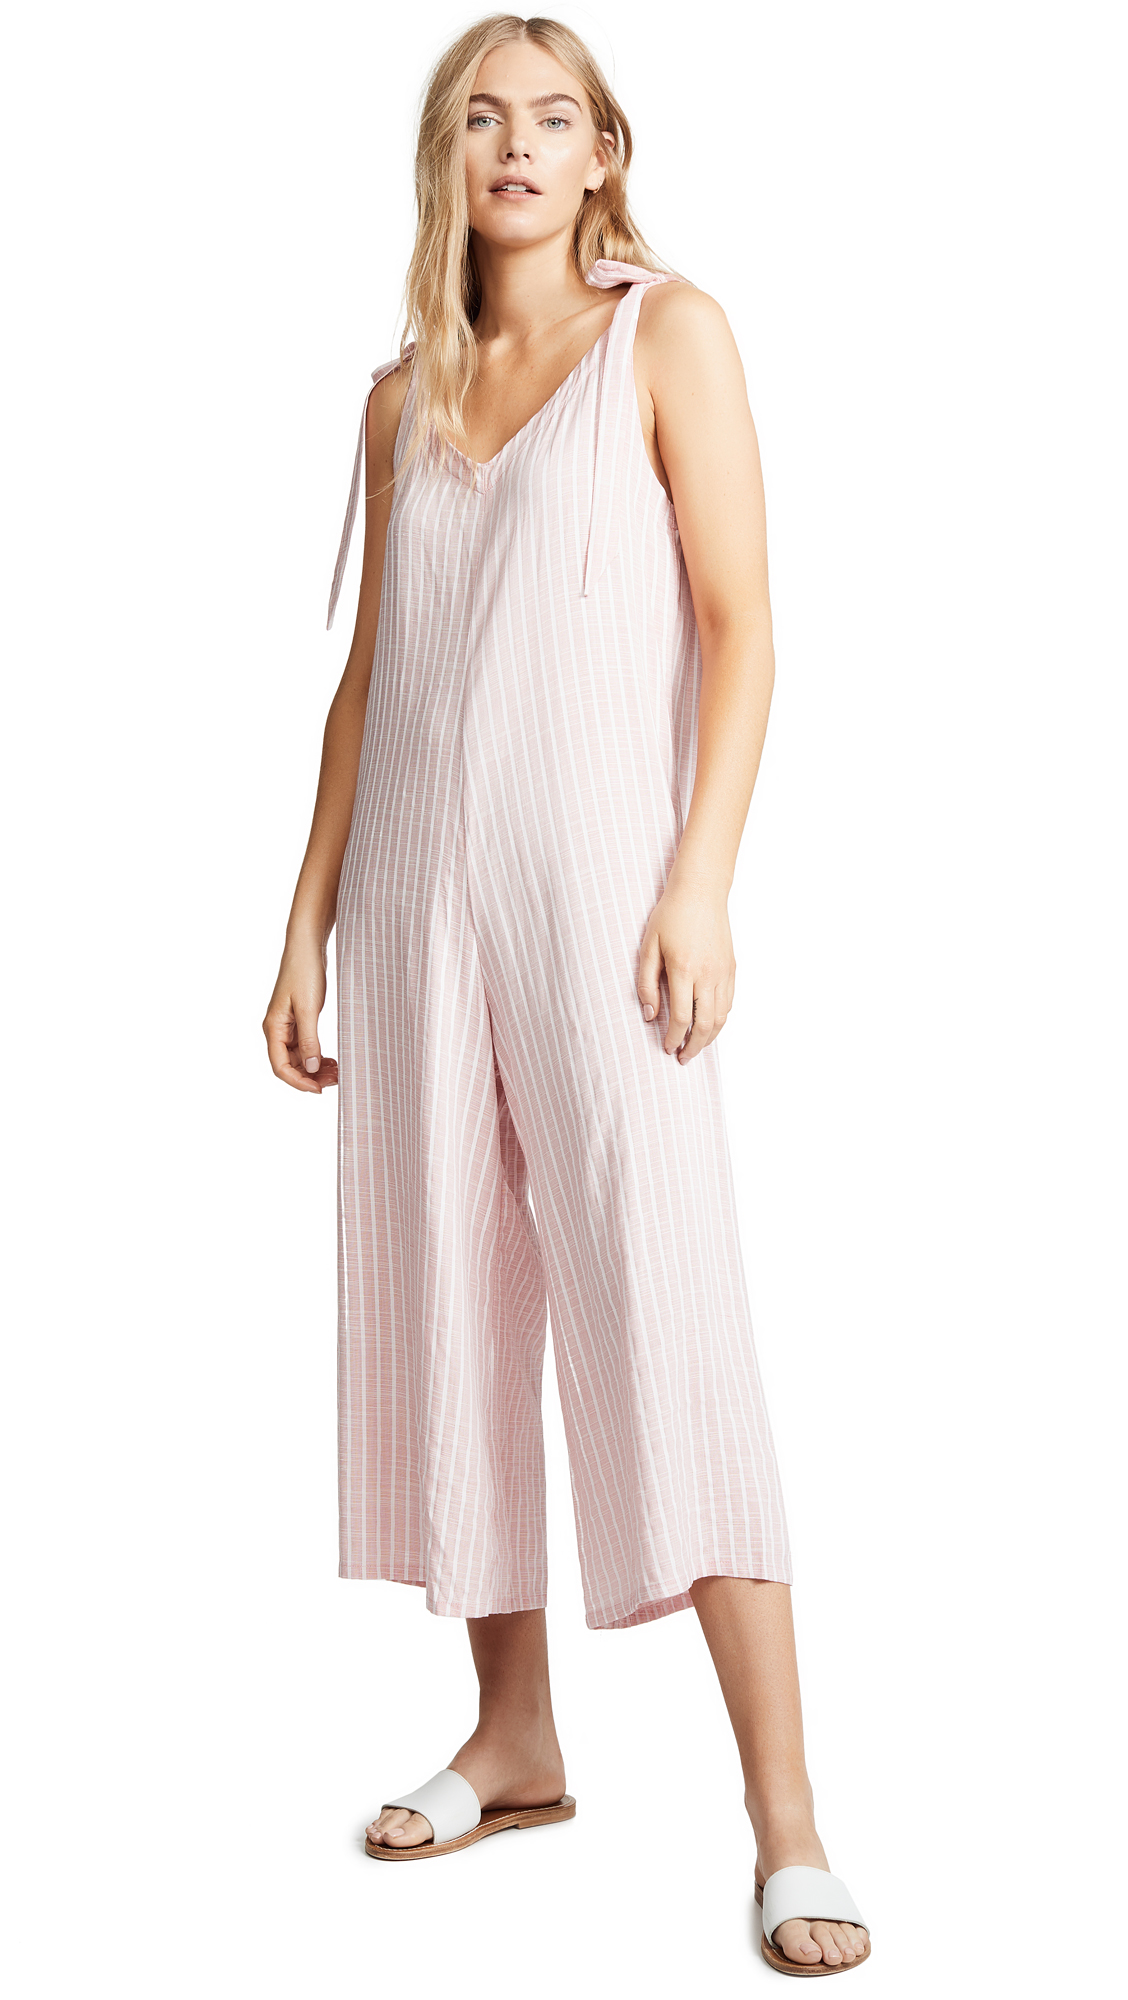 Eberjey Amalfi Stripe Jordan Romper - Faded Red/White